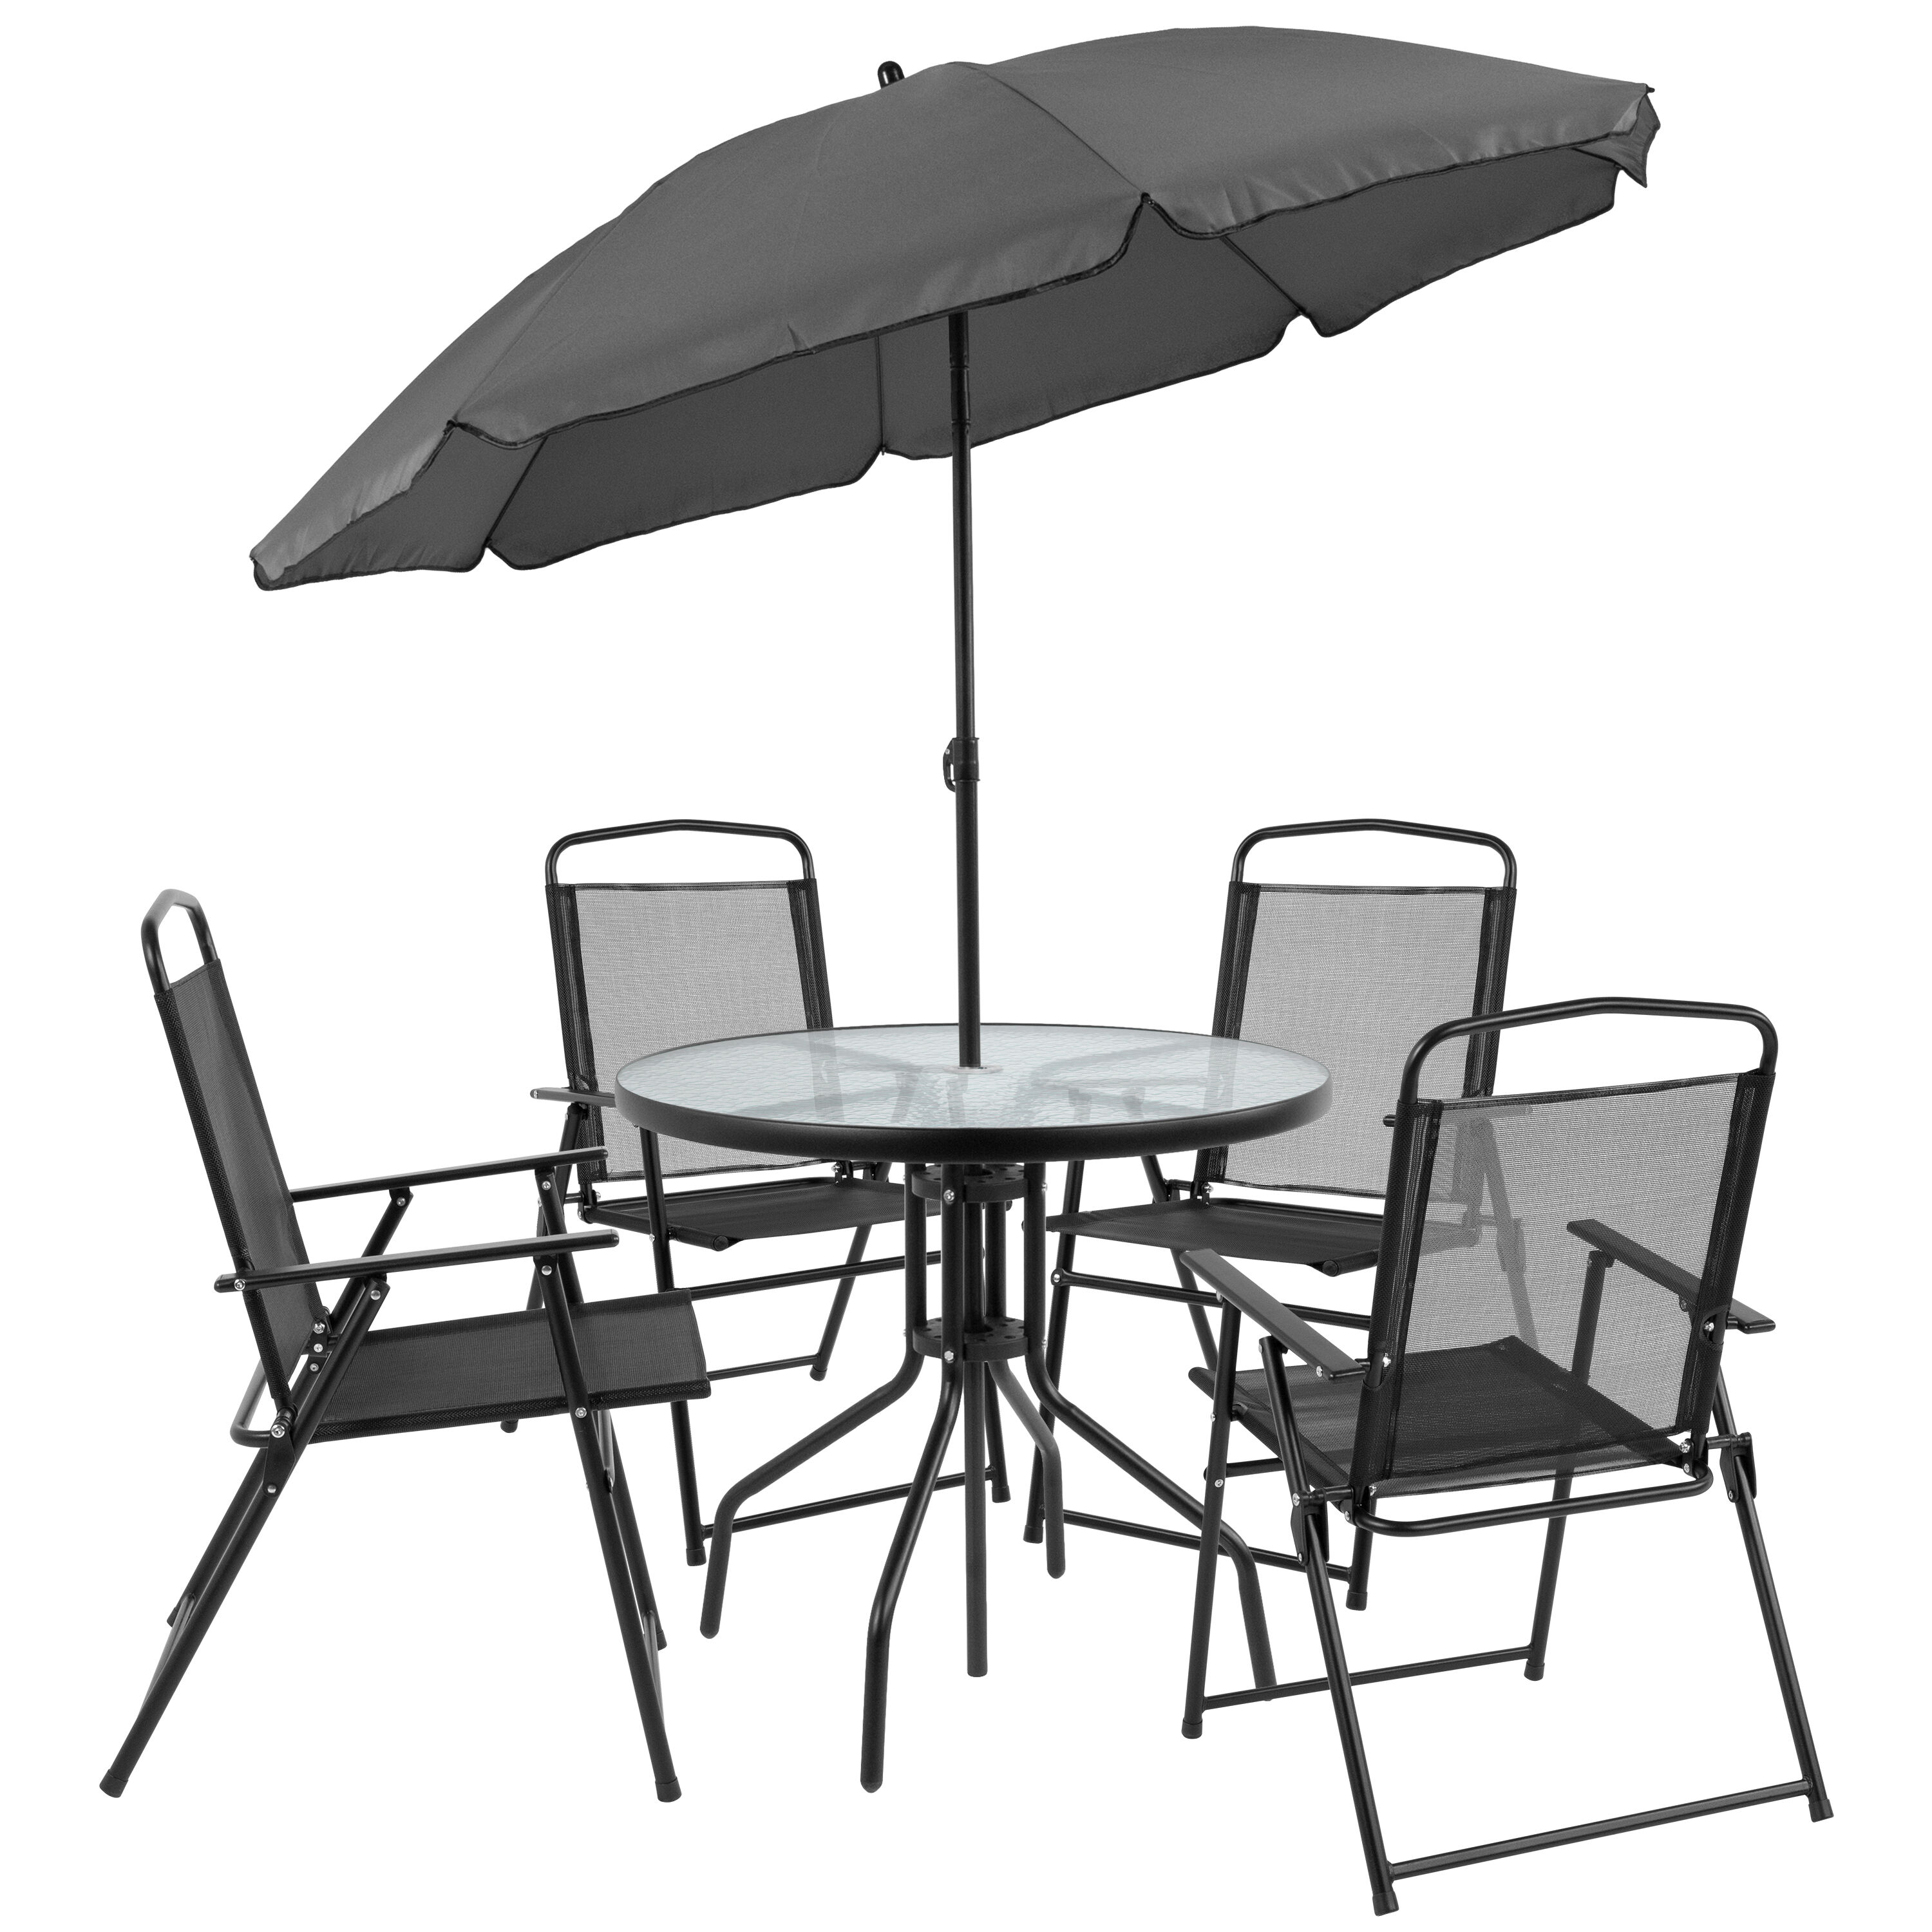 Folding Chairs With Umbrella 6pc Black Patio Set And Umbrella Gm 202012 Bk Gg